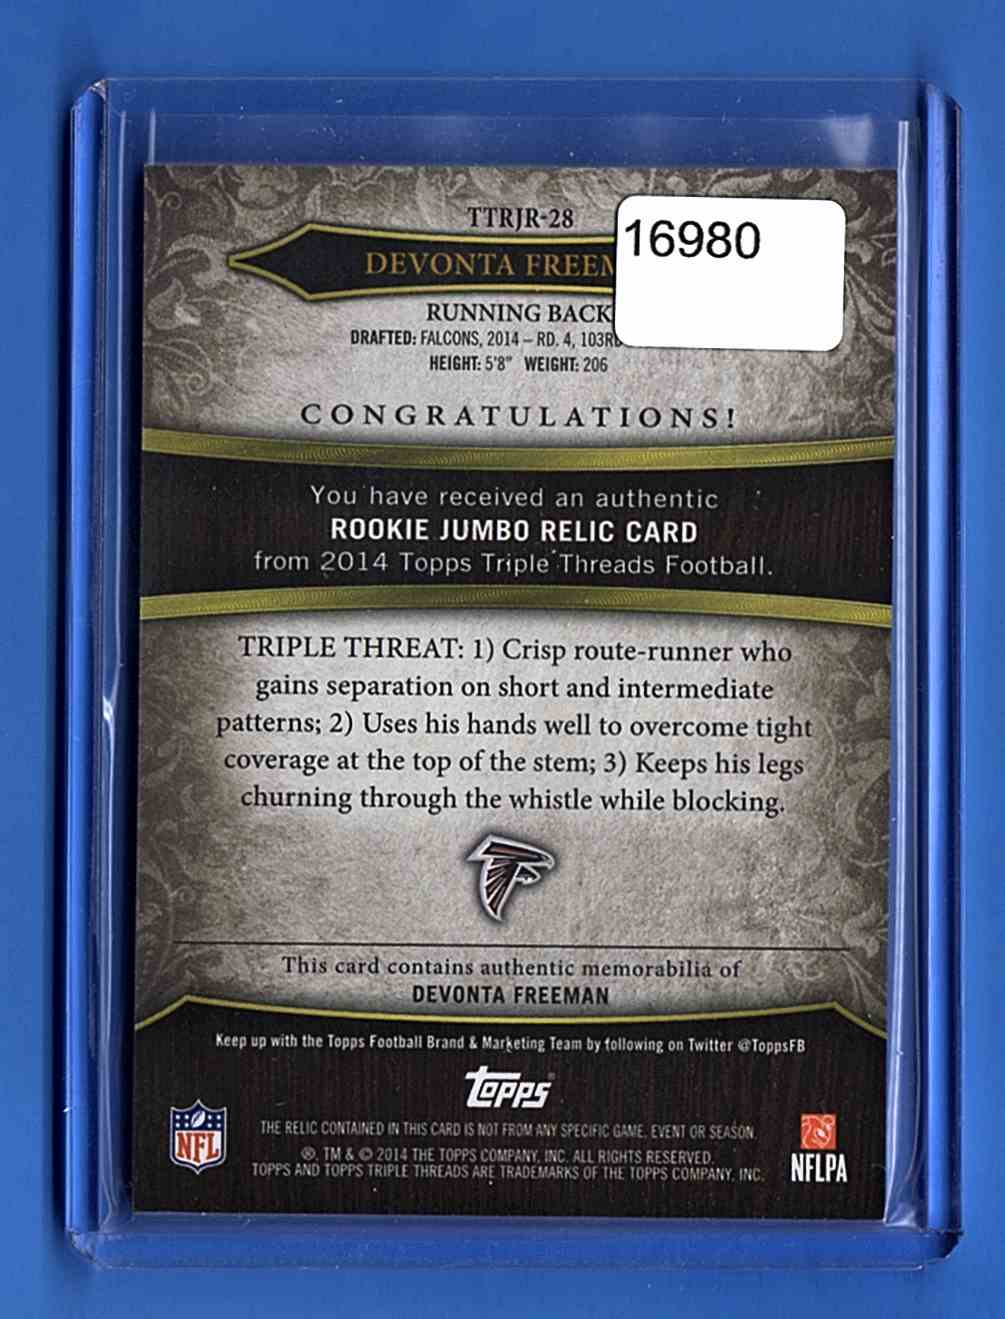 2014 Topps Triple Threads Rookie Jumbo Relics Devonta Freeman #TTRJR-28 card back image